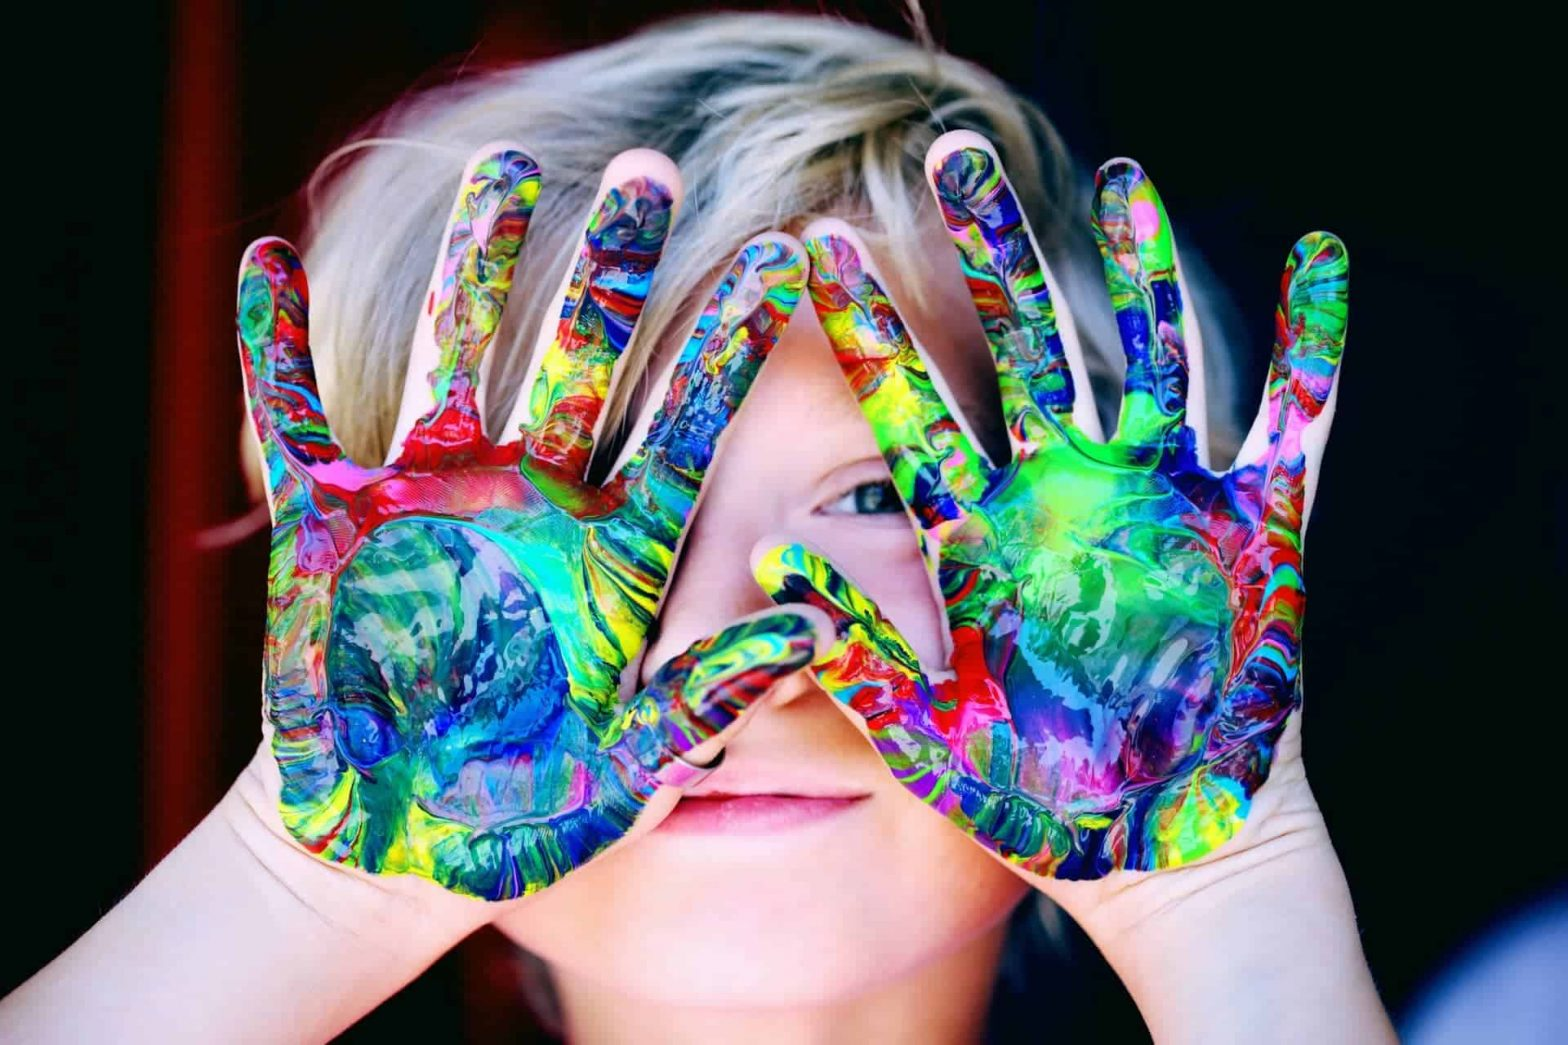 painted child's hands